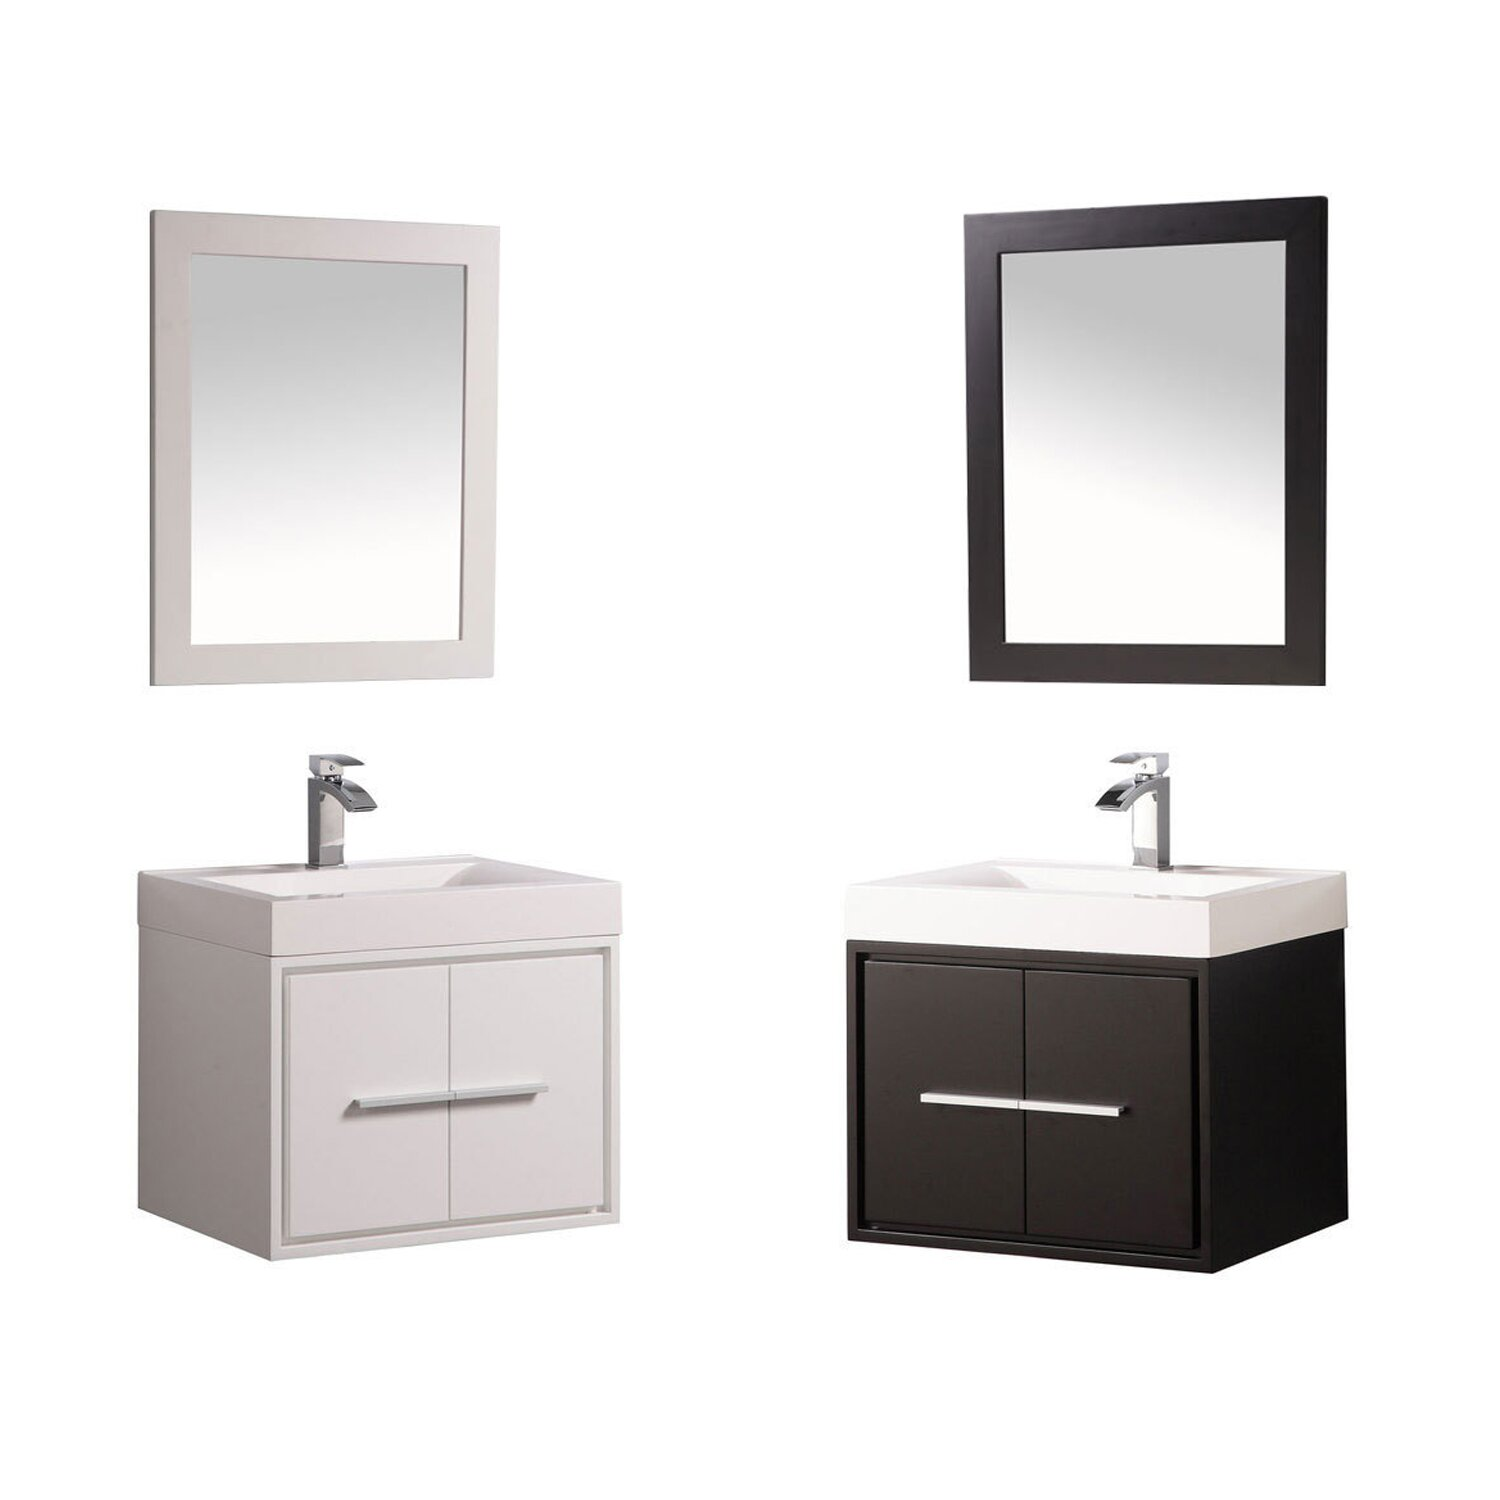 cypress 24 single floating bathroom vanity set with mirror reviews allmodern. Black Bedroom Furniture Sets. Home Design Ideas